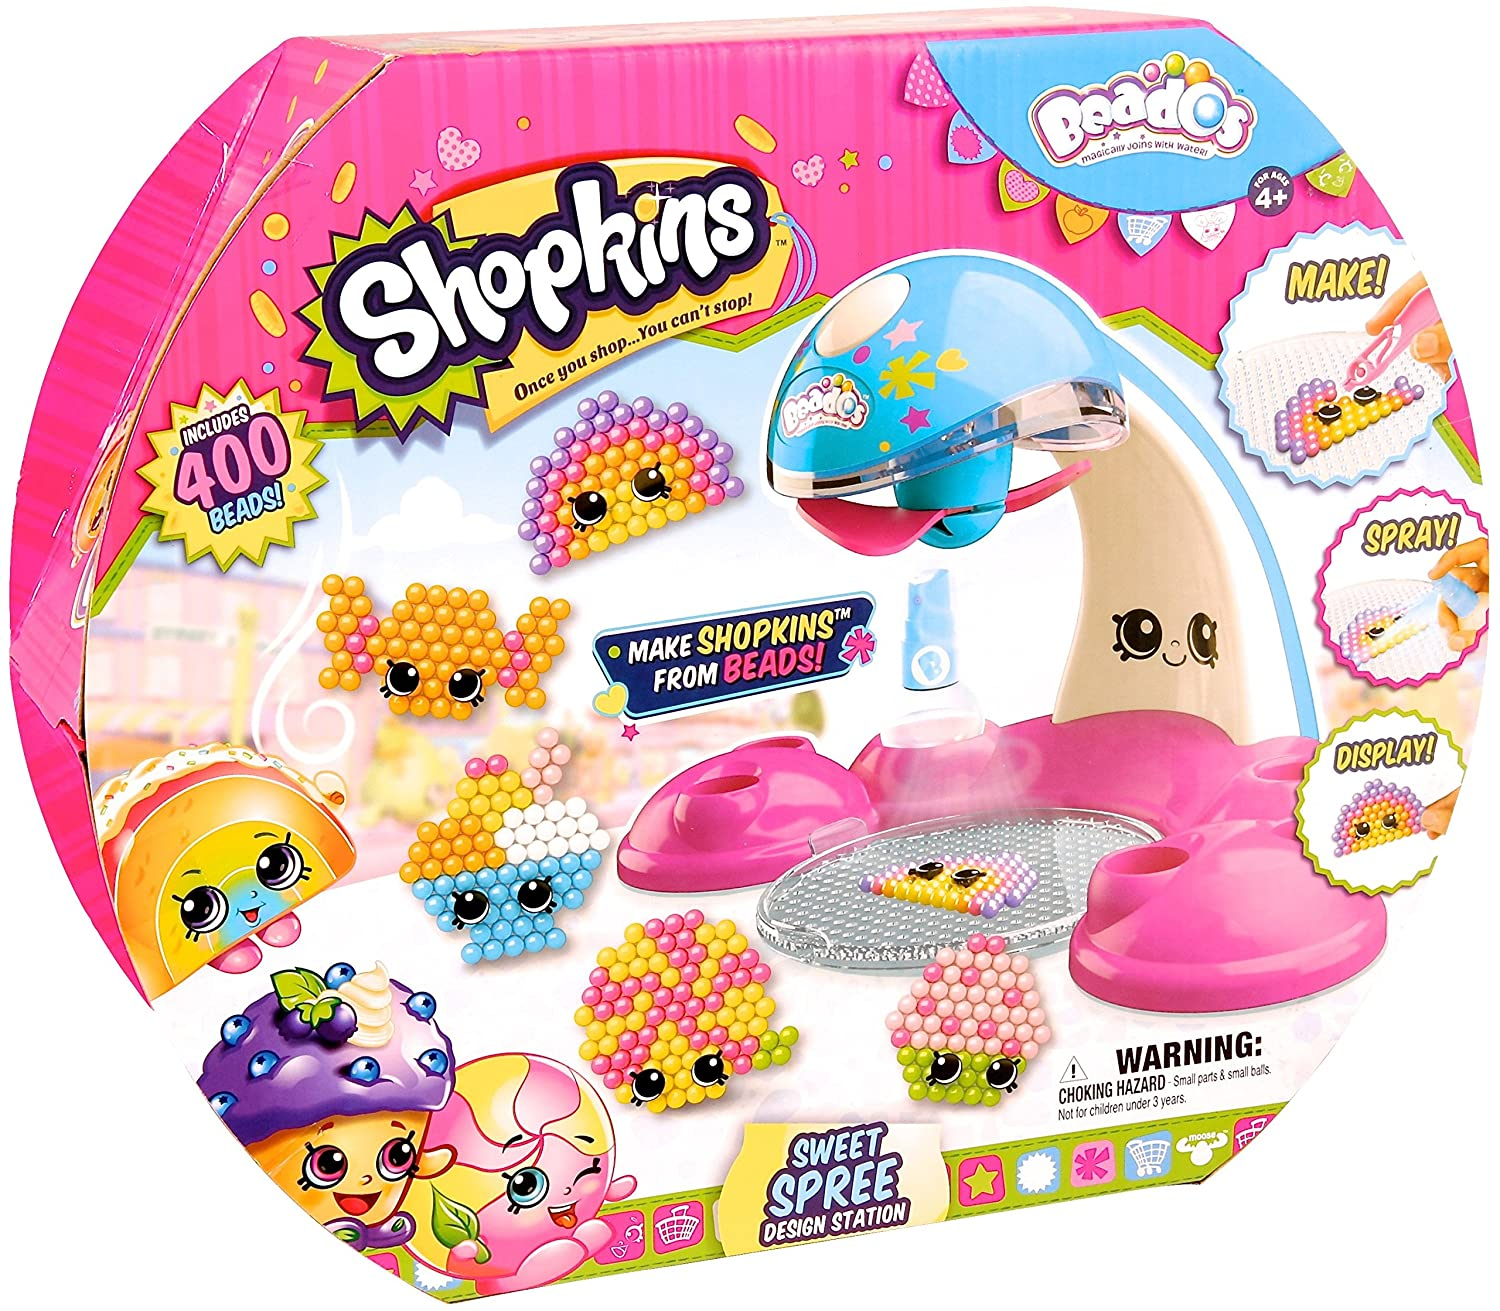 Beados Shopkins Season 3 Quick Dry Design Studio: Amazon.es: Juguetes y juegos